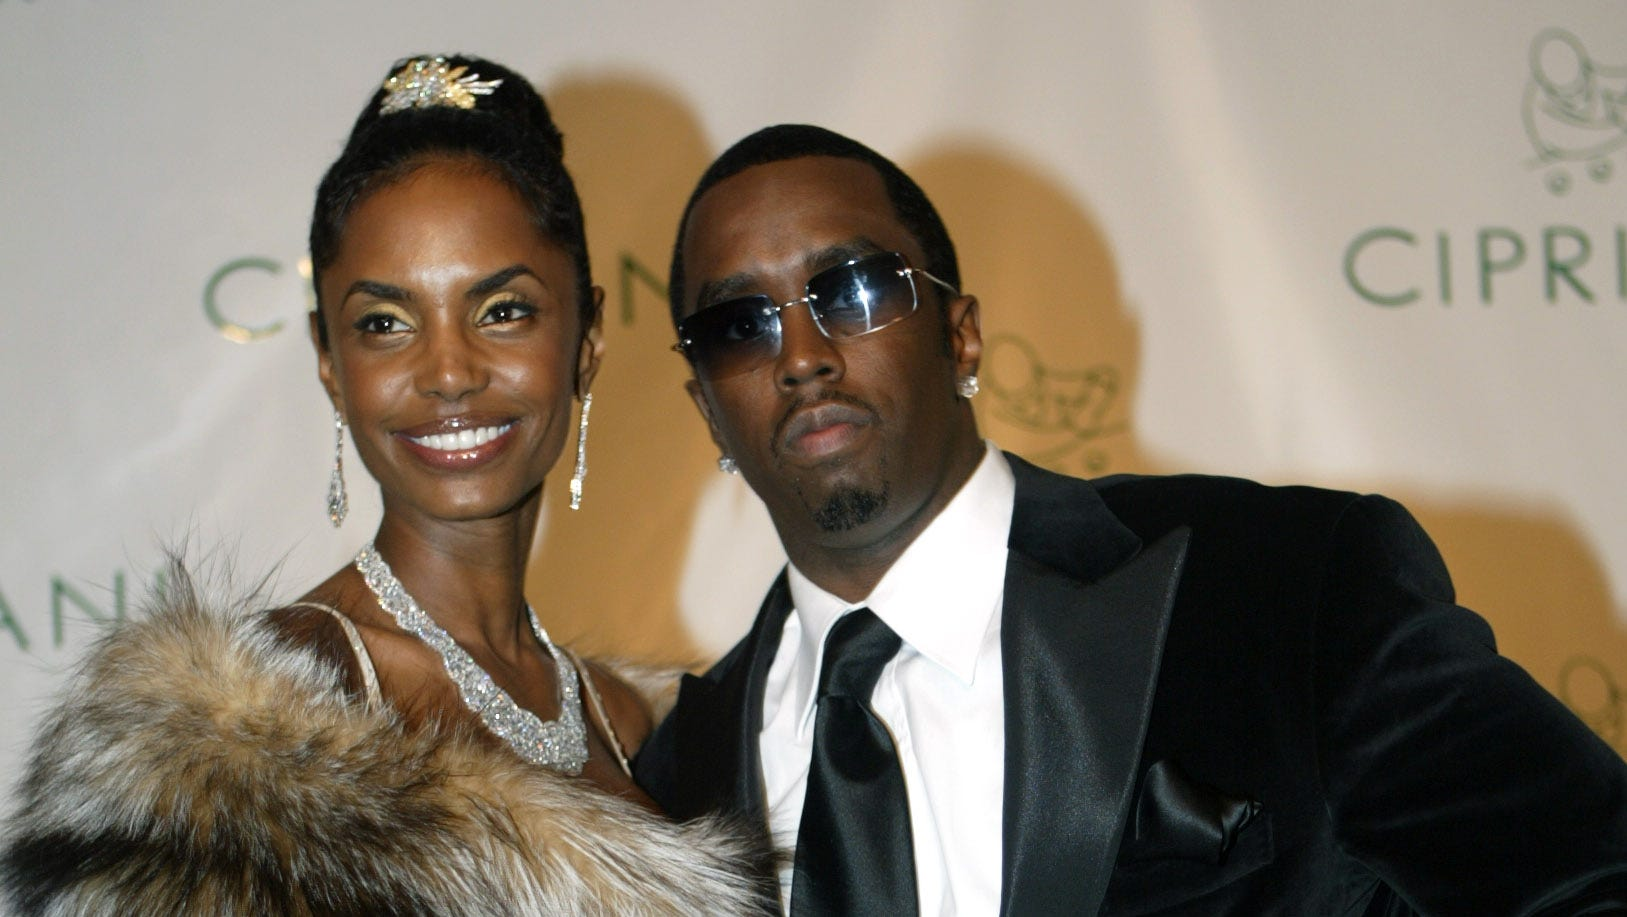 """Kim Porter has reportedly died. Here, Sean """"Diddy"""" Combs and Kim Porter, left, pose on Nov. 4, 2004, as they arrived for Combs' 35th birthday celebration in New York."""